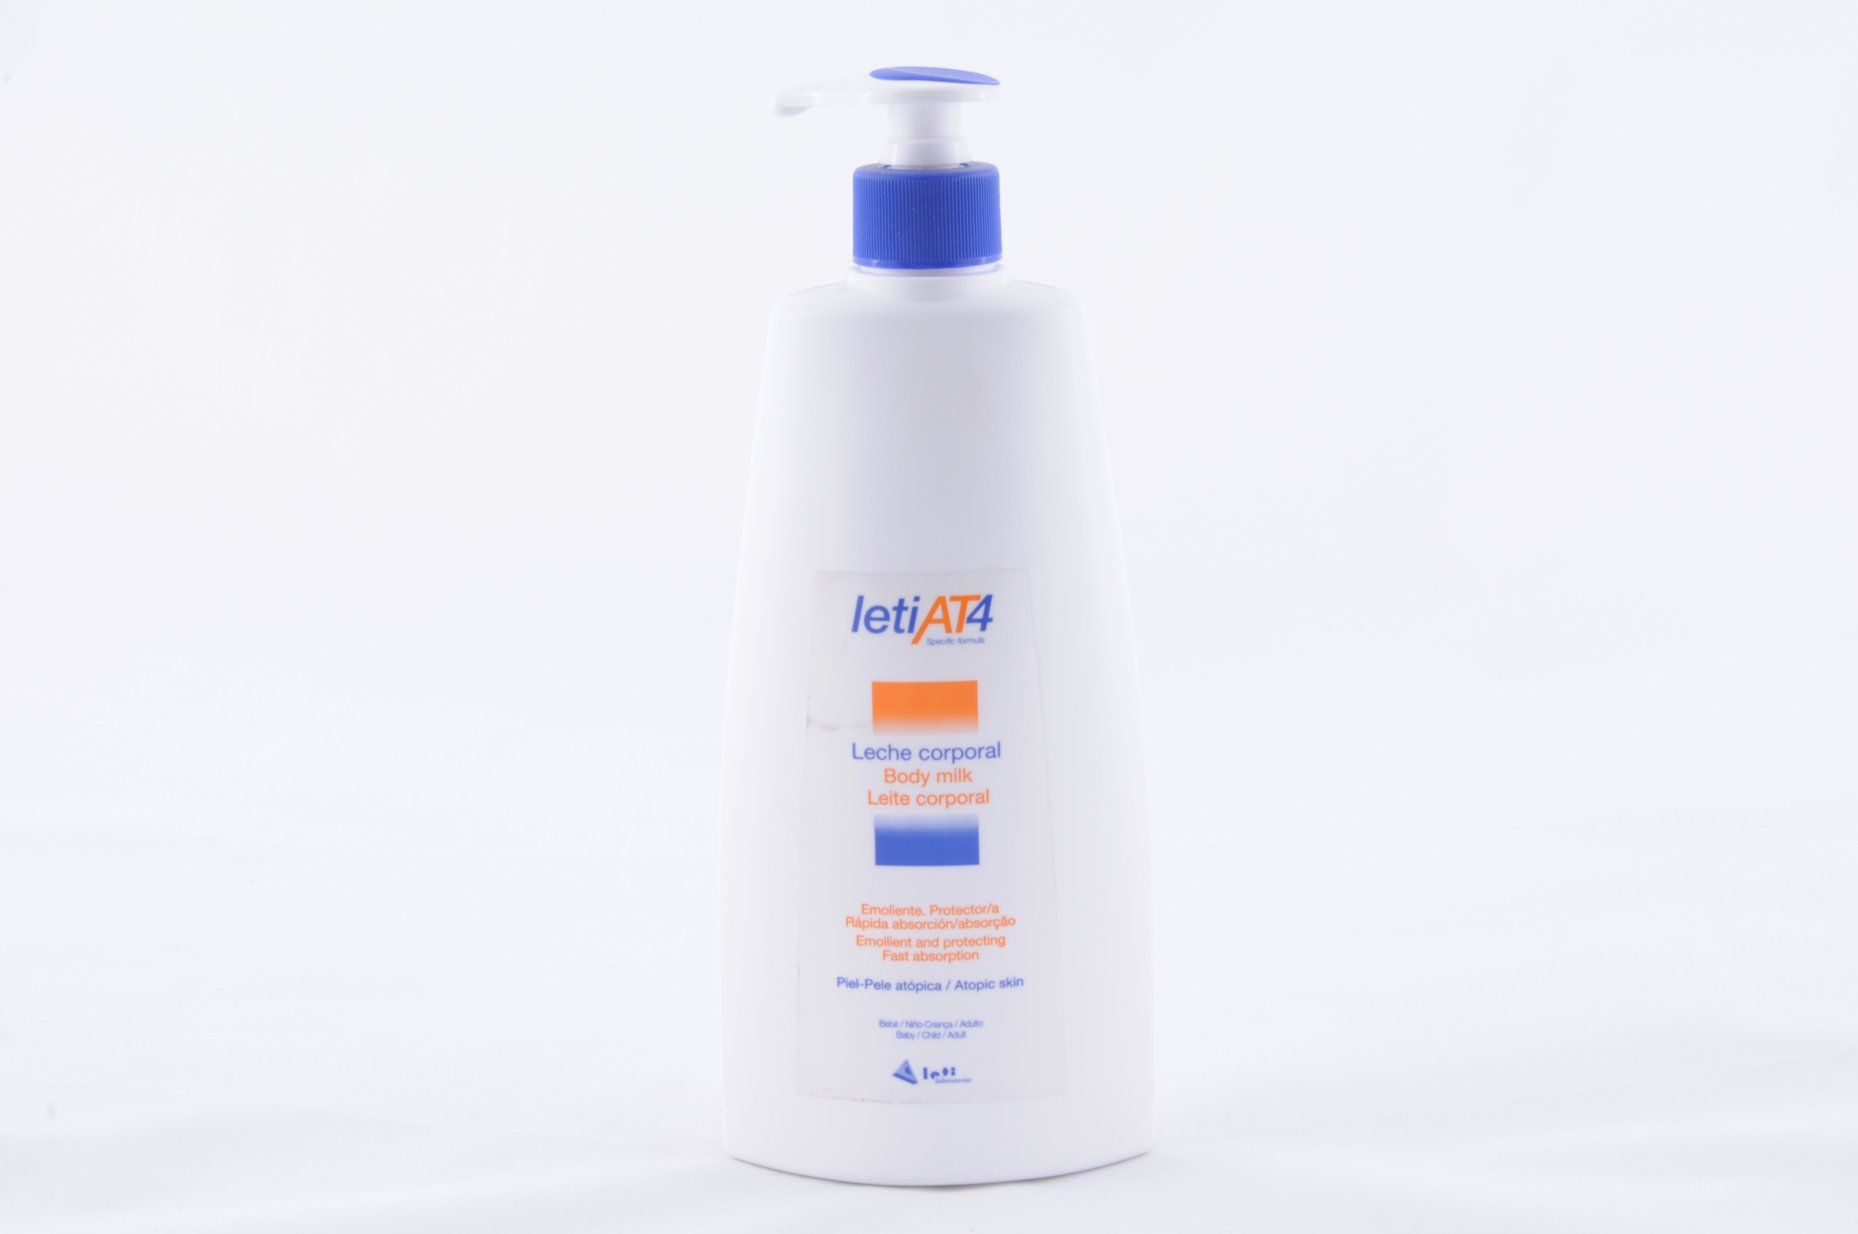 LETI AT-4 Leche Corporal 500ML product image